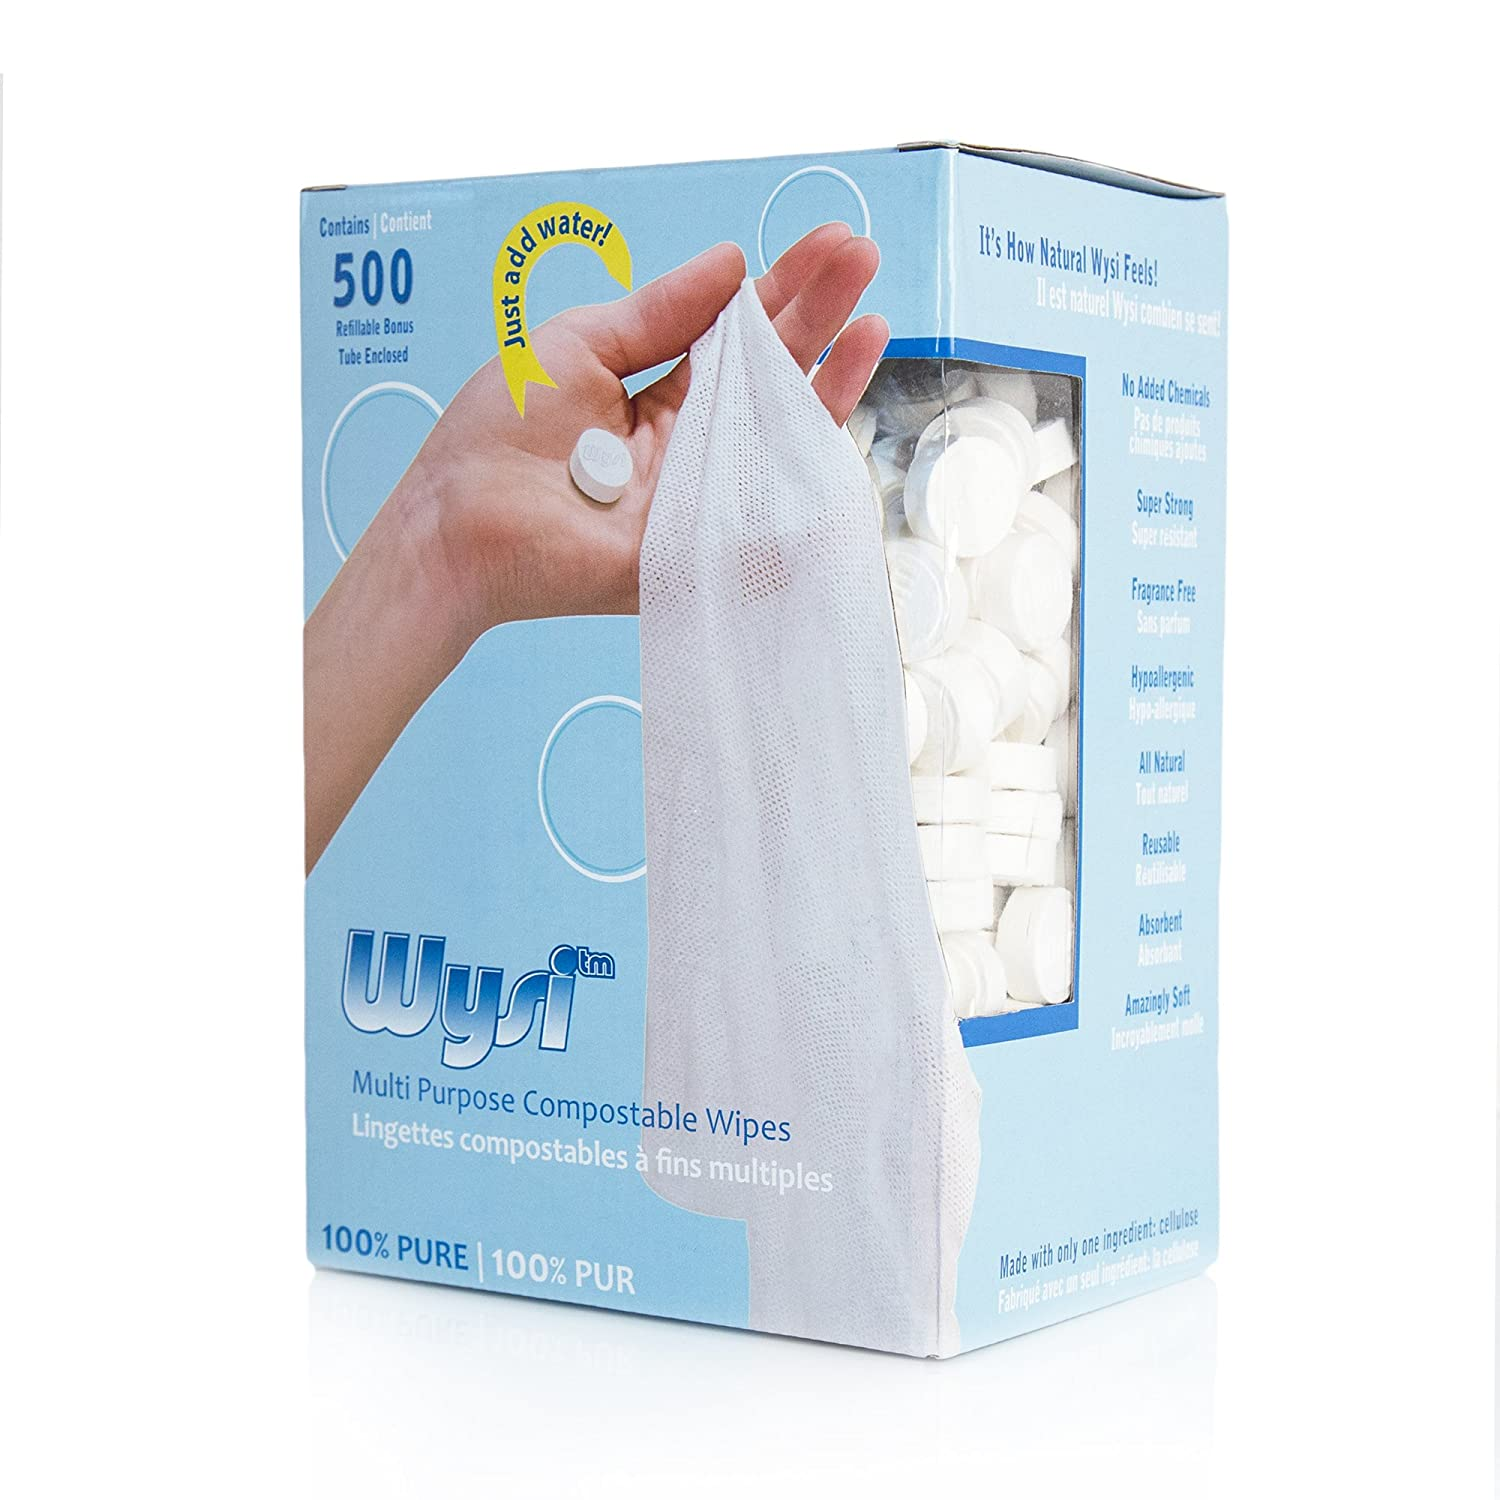 Wysi - Wipe 500 Biodegradable Wipes WW500